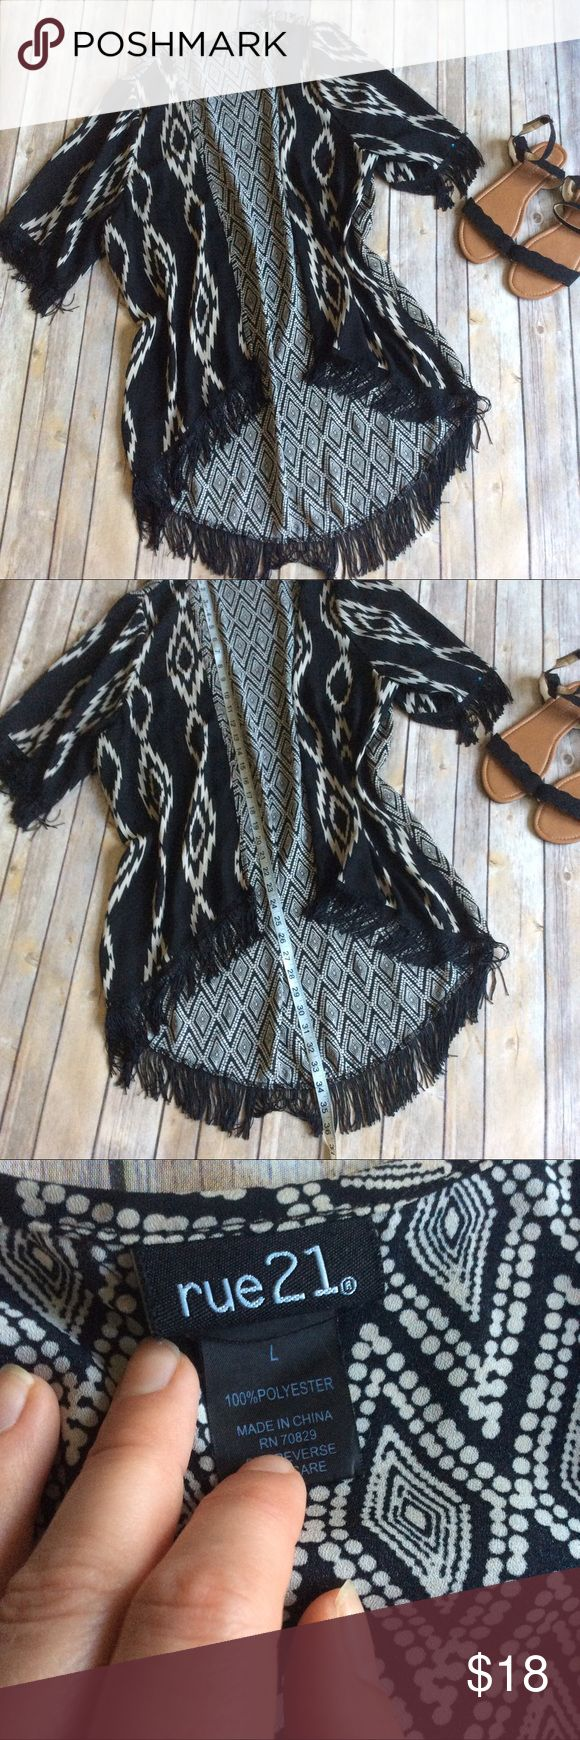 Rue 21 Long Fringe Kimono size Large Like new long fit Kimono with fringe detail at them bottom and at the sleeves. Perfect for pairing with tons of outfits! ❌no trades, holds, or lowball offers. ✅Clean and smoke free home, quick shipping, bundle discount, always! 🎁Free gift with $15+ bundle. Rue 21 Tops